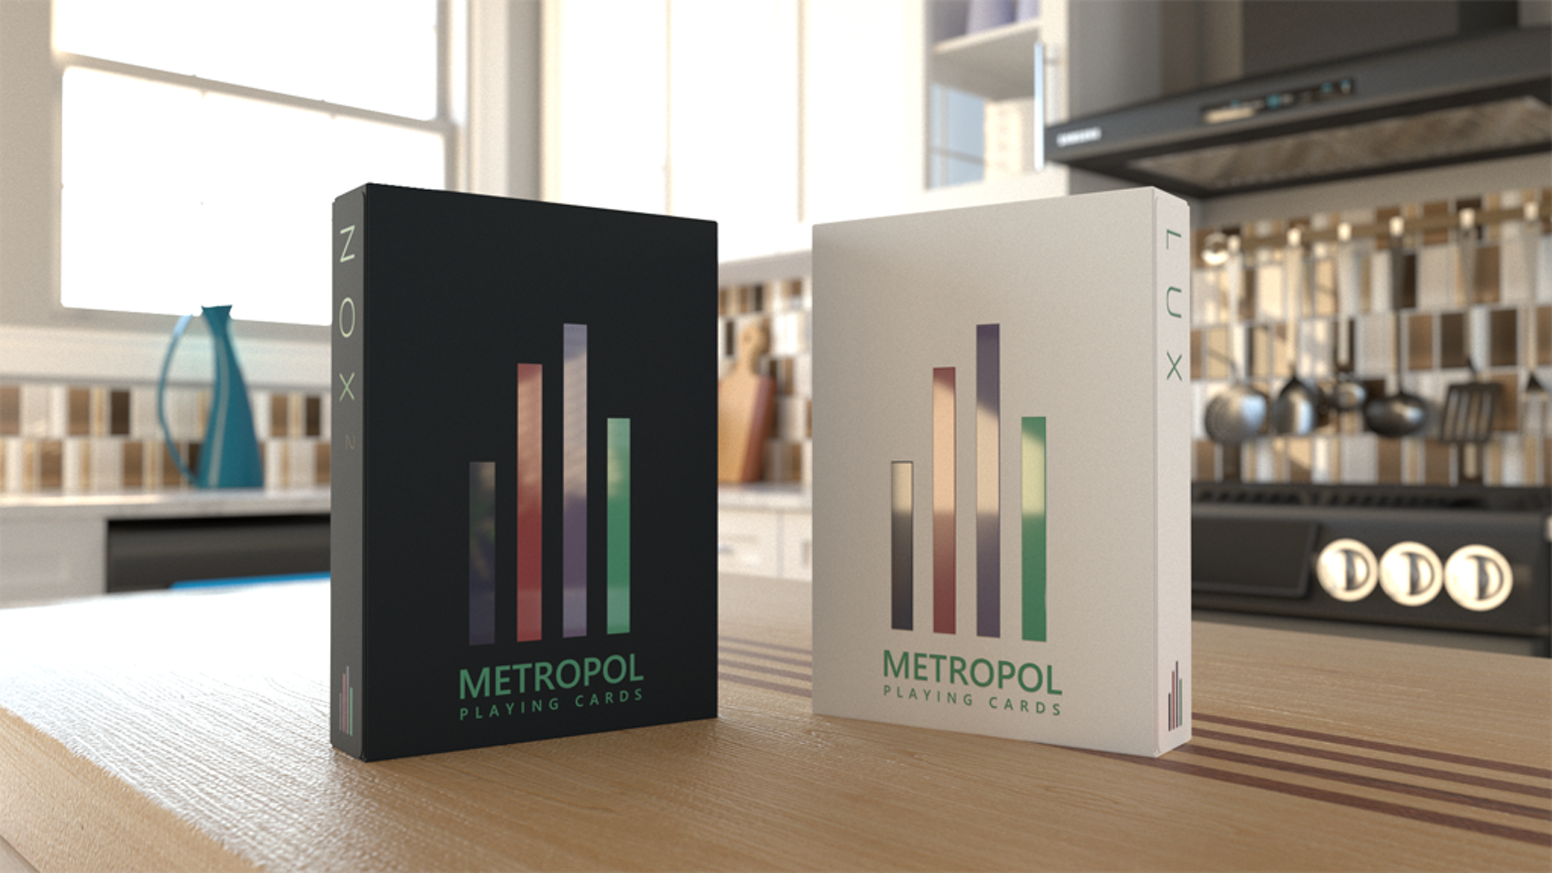 Classic Metropol Playing Card design, fresh new colour palette.